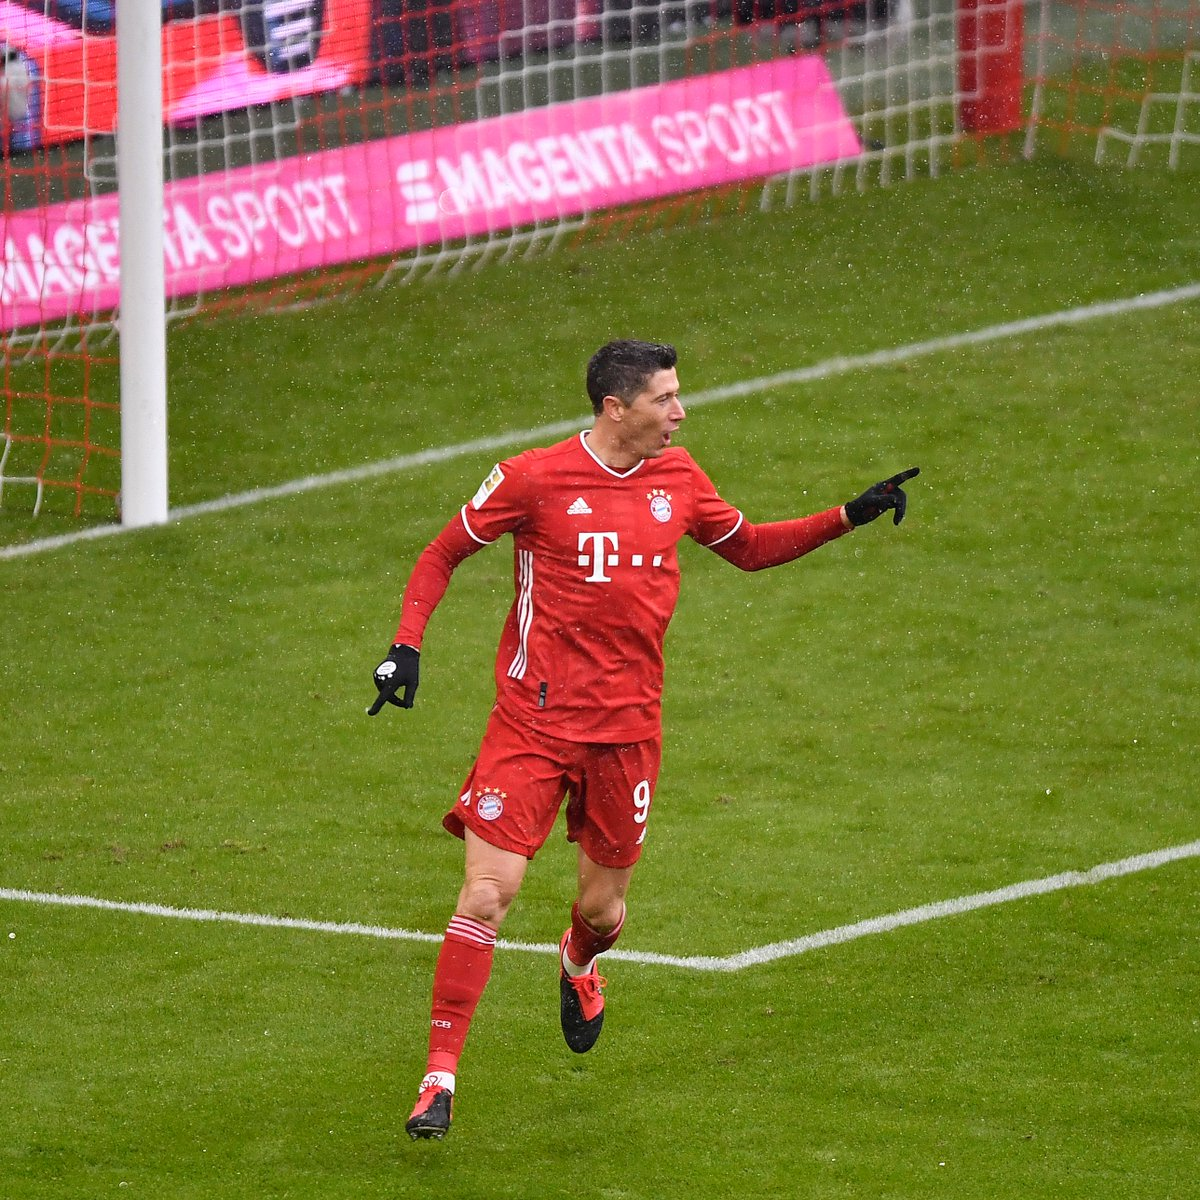 Another matchday, another Lewandowski record... 😏  @lewy_official  is the first player in Bundesliga history to score 21 goals after just 16 games - a new Hinrunde record, beating Gerd Müller's 20 goals from 1968/69 🔥  🔴⚪ #FCBSCF